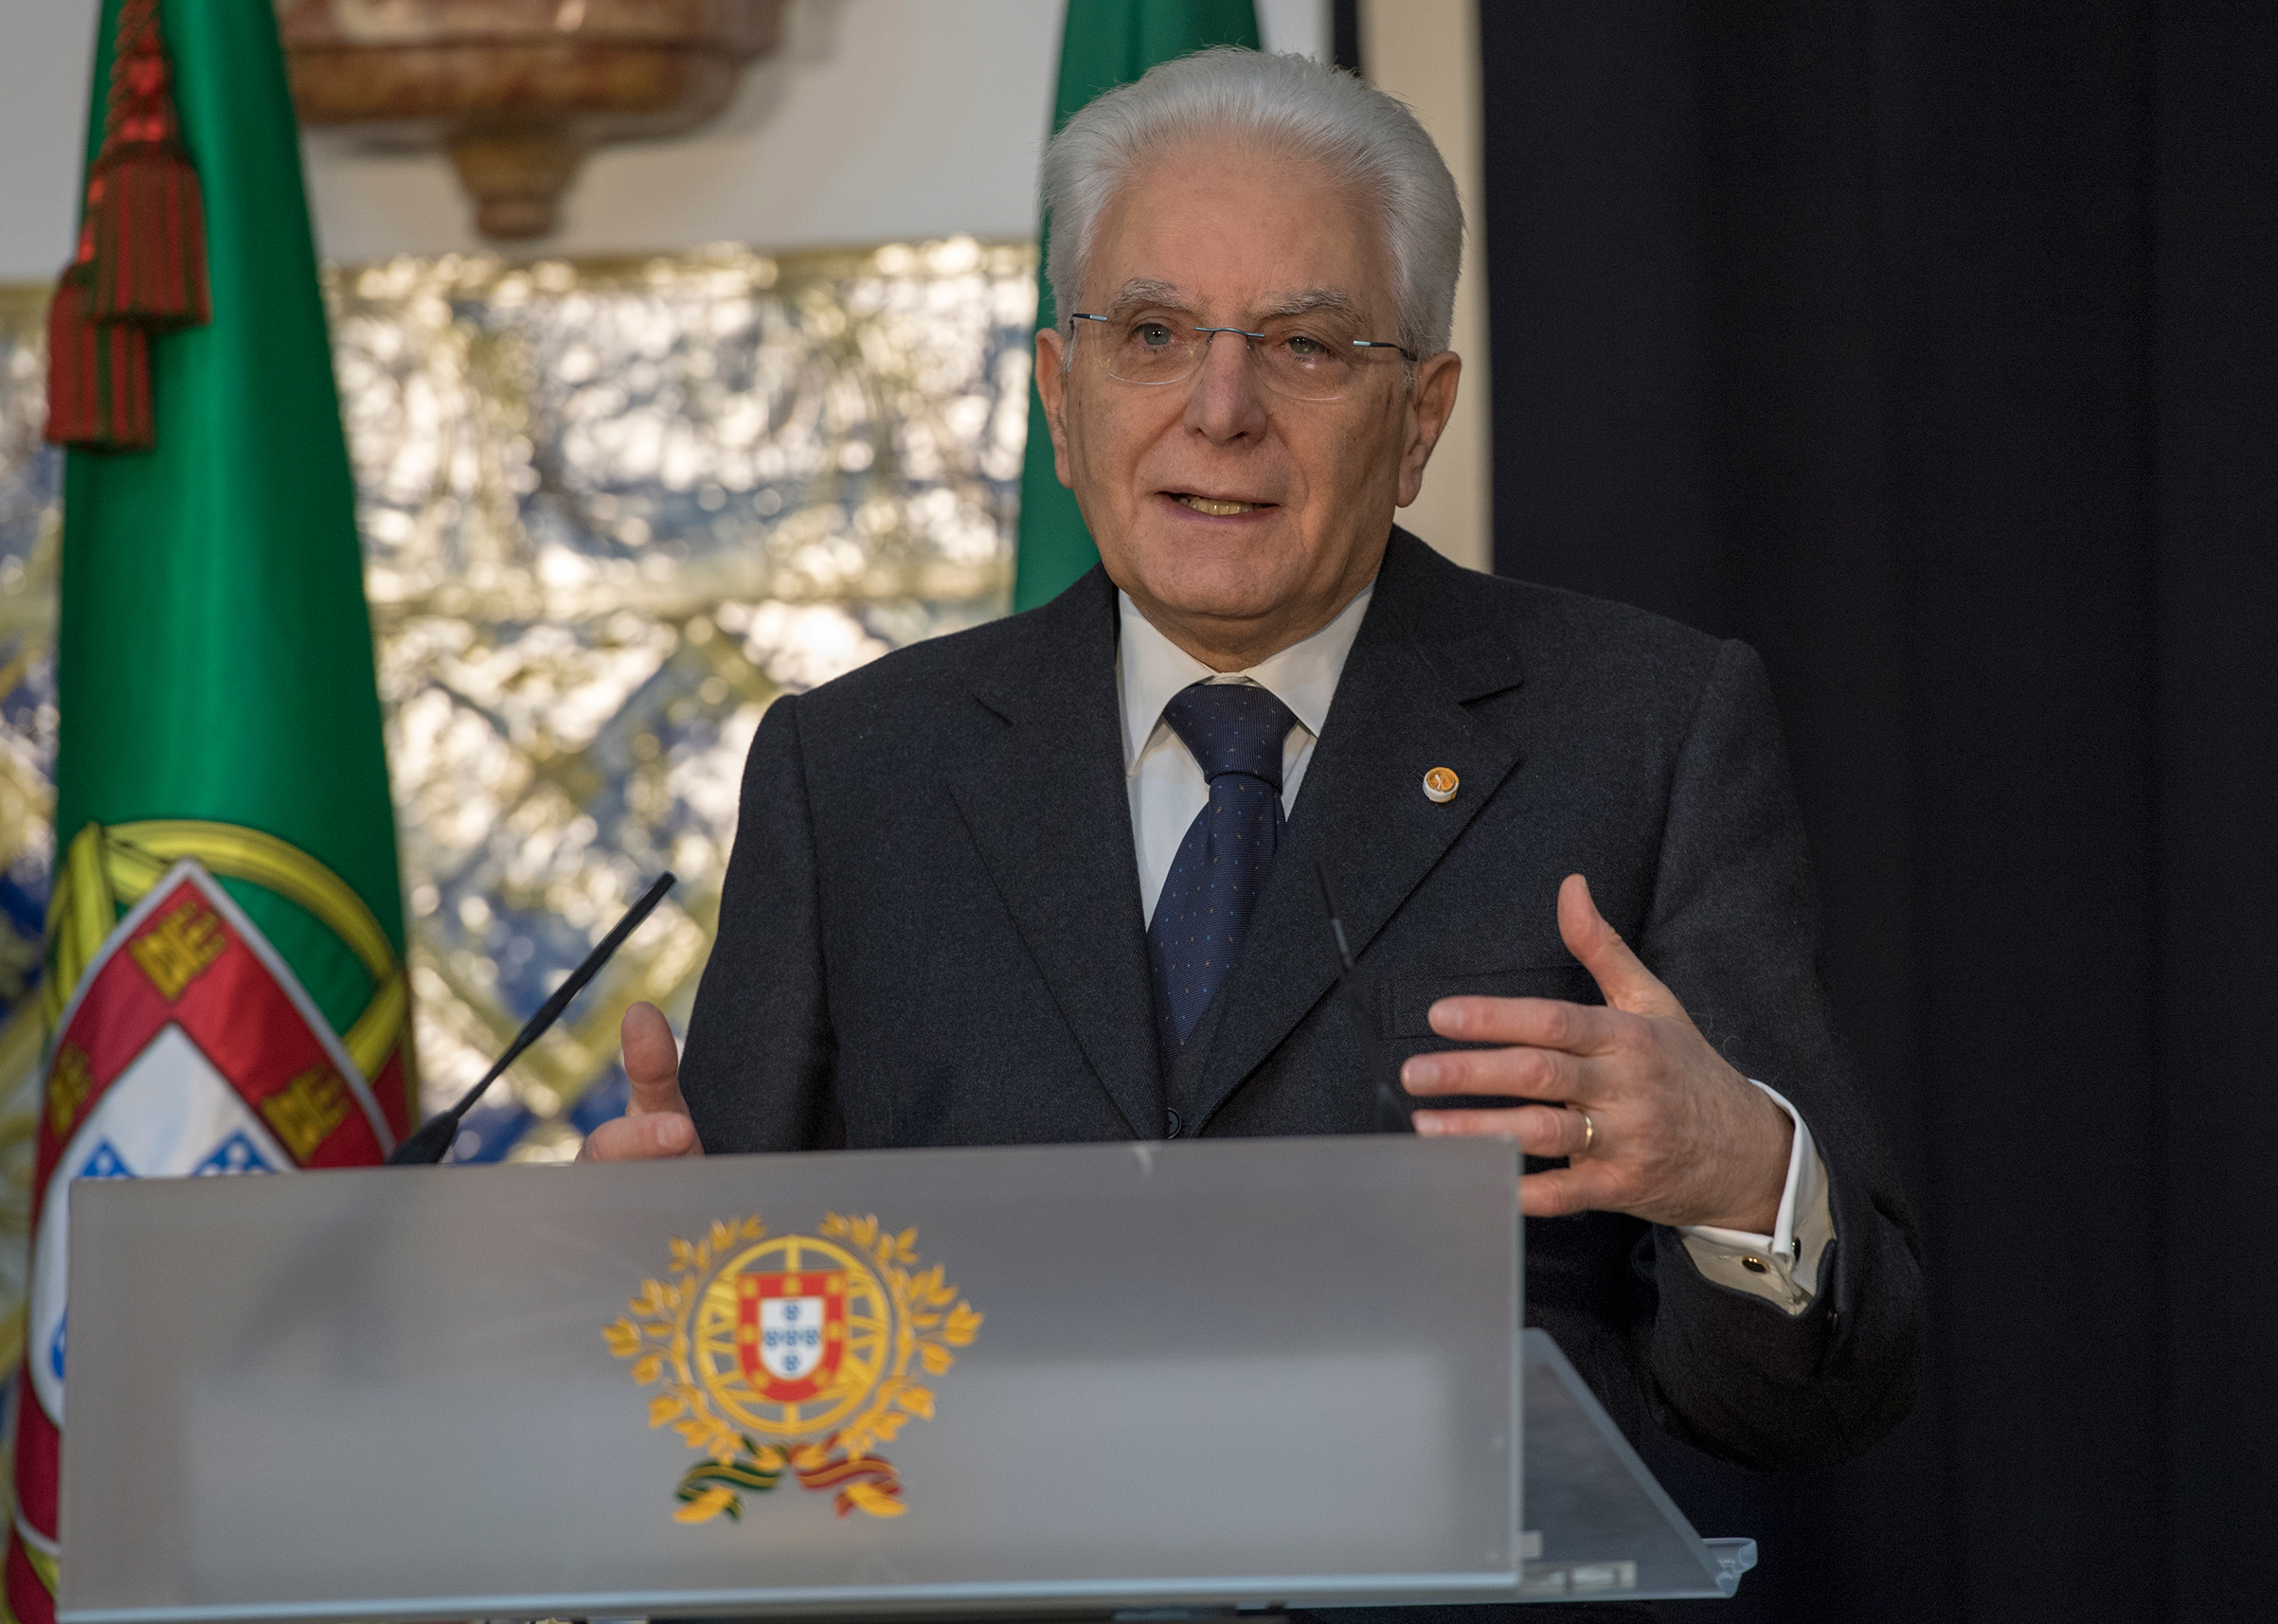 Italian President Sergio Mattarella delivers remarks at the end of his meeting with Portuguese President in Belem Presidential Palace on Dec. 06, 2017 in Lisbon, Portugal.